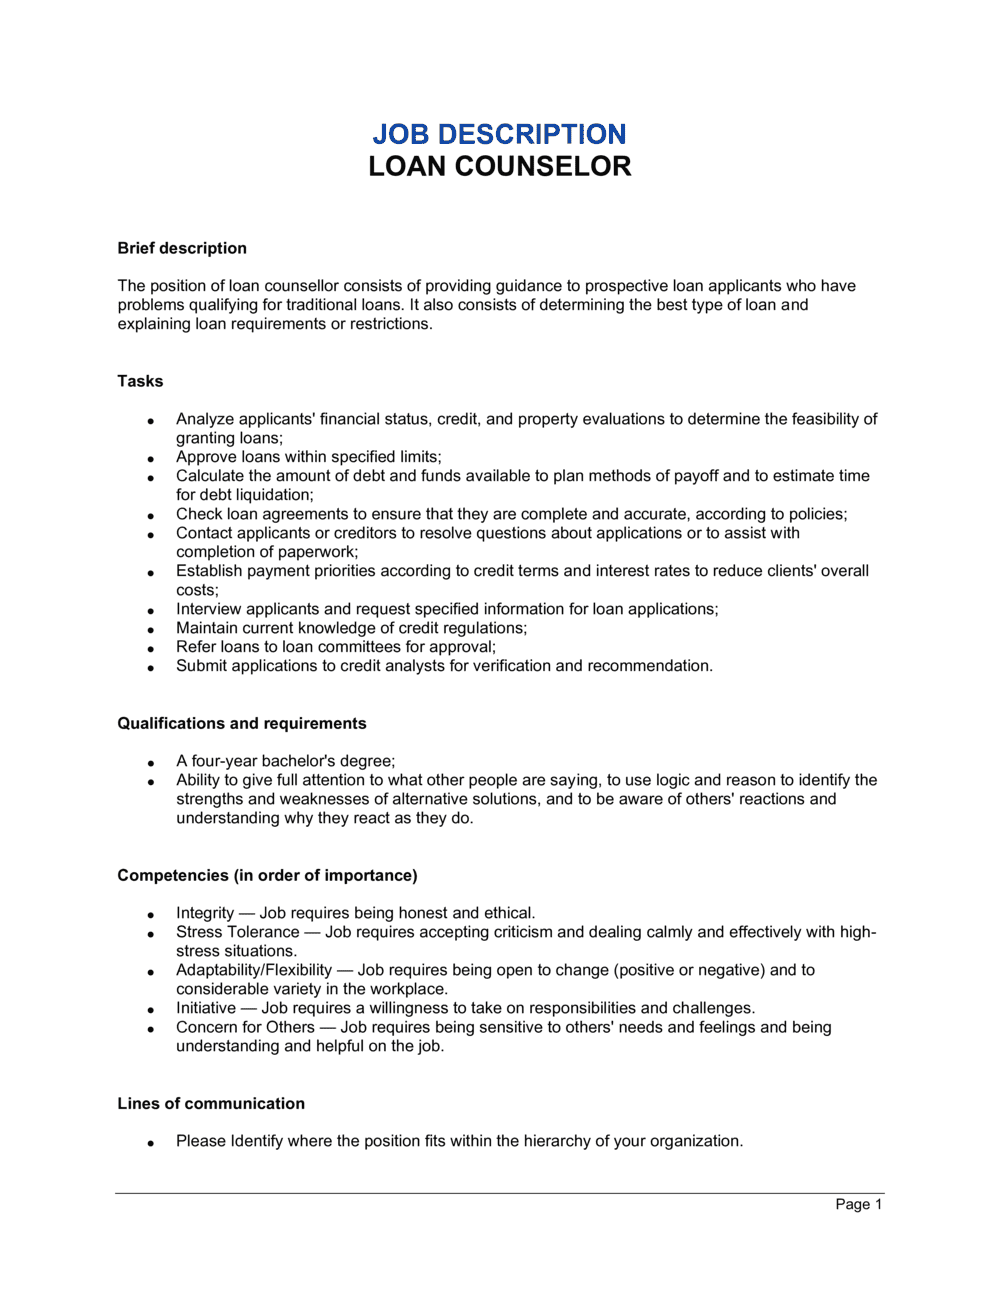 Business-in-a-Box's Loan Counselor Job Description Template